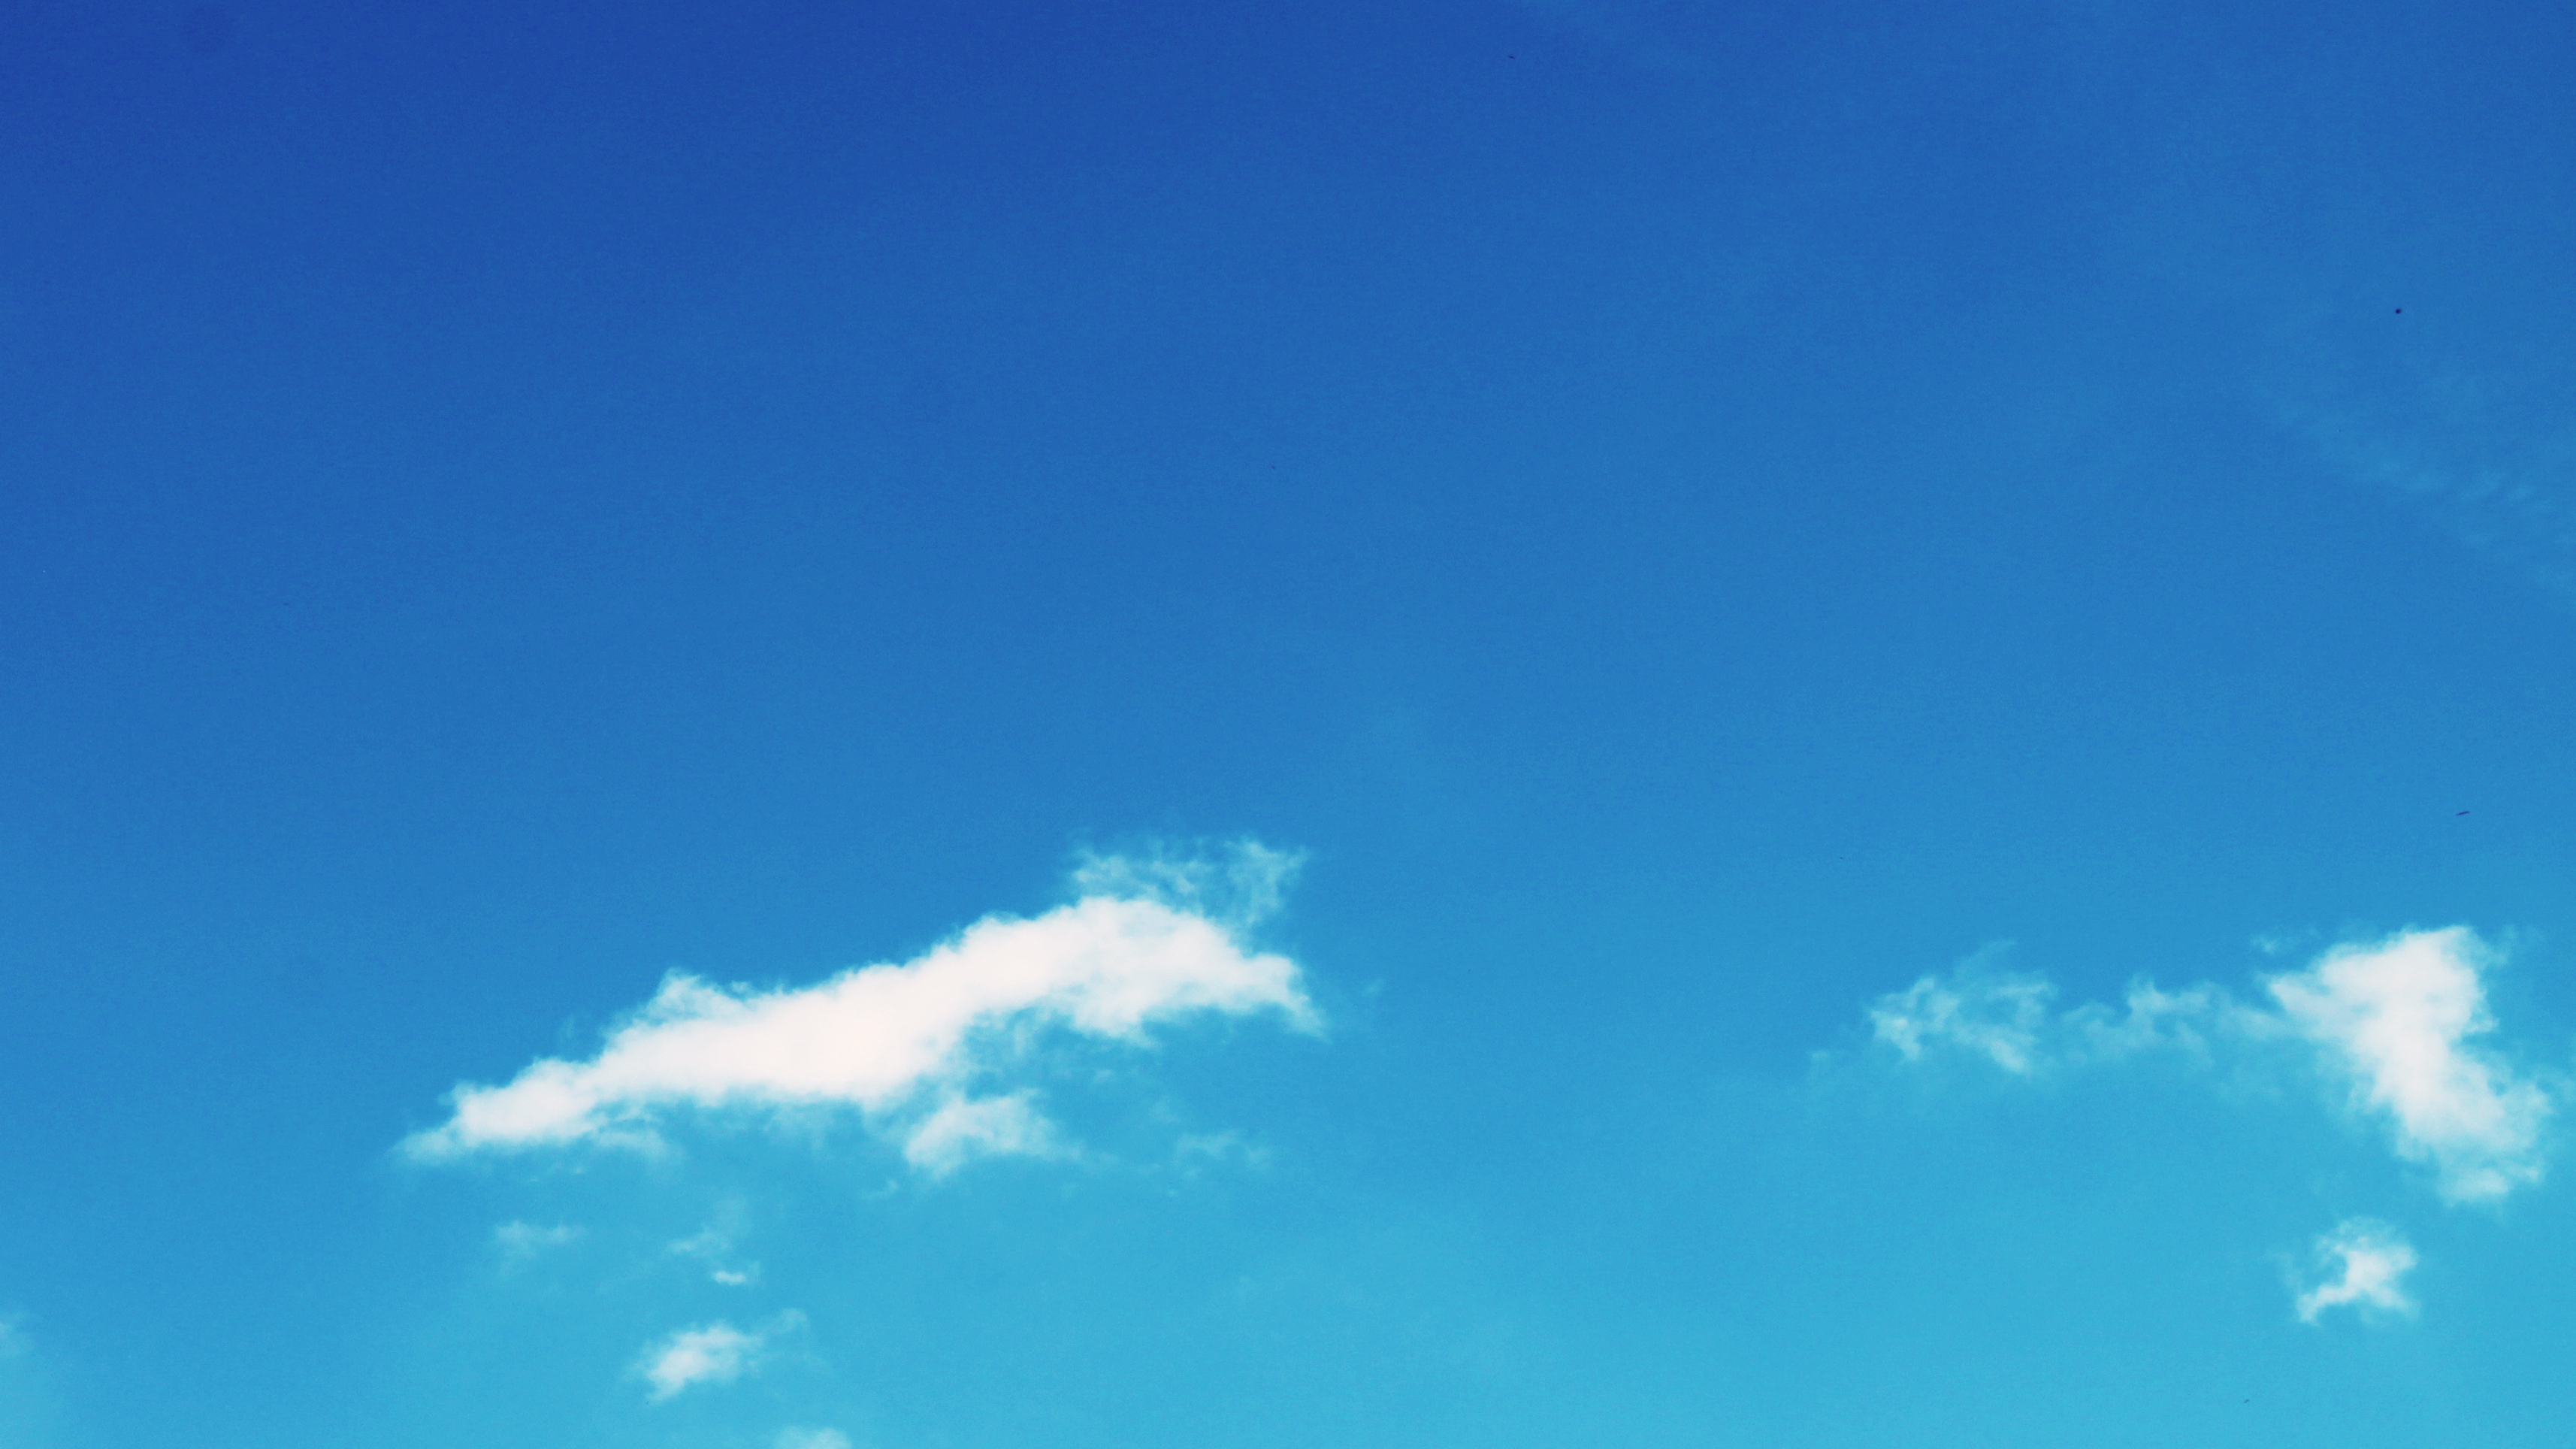 Sky Wallpapers High Resolution 3428x1928